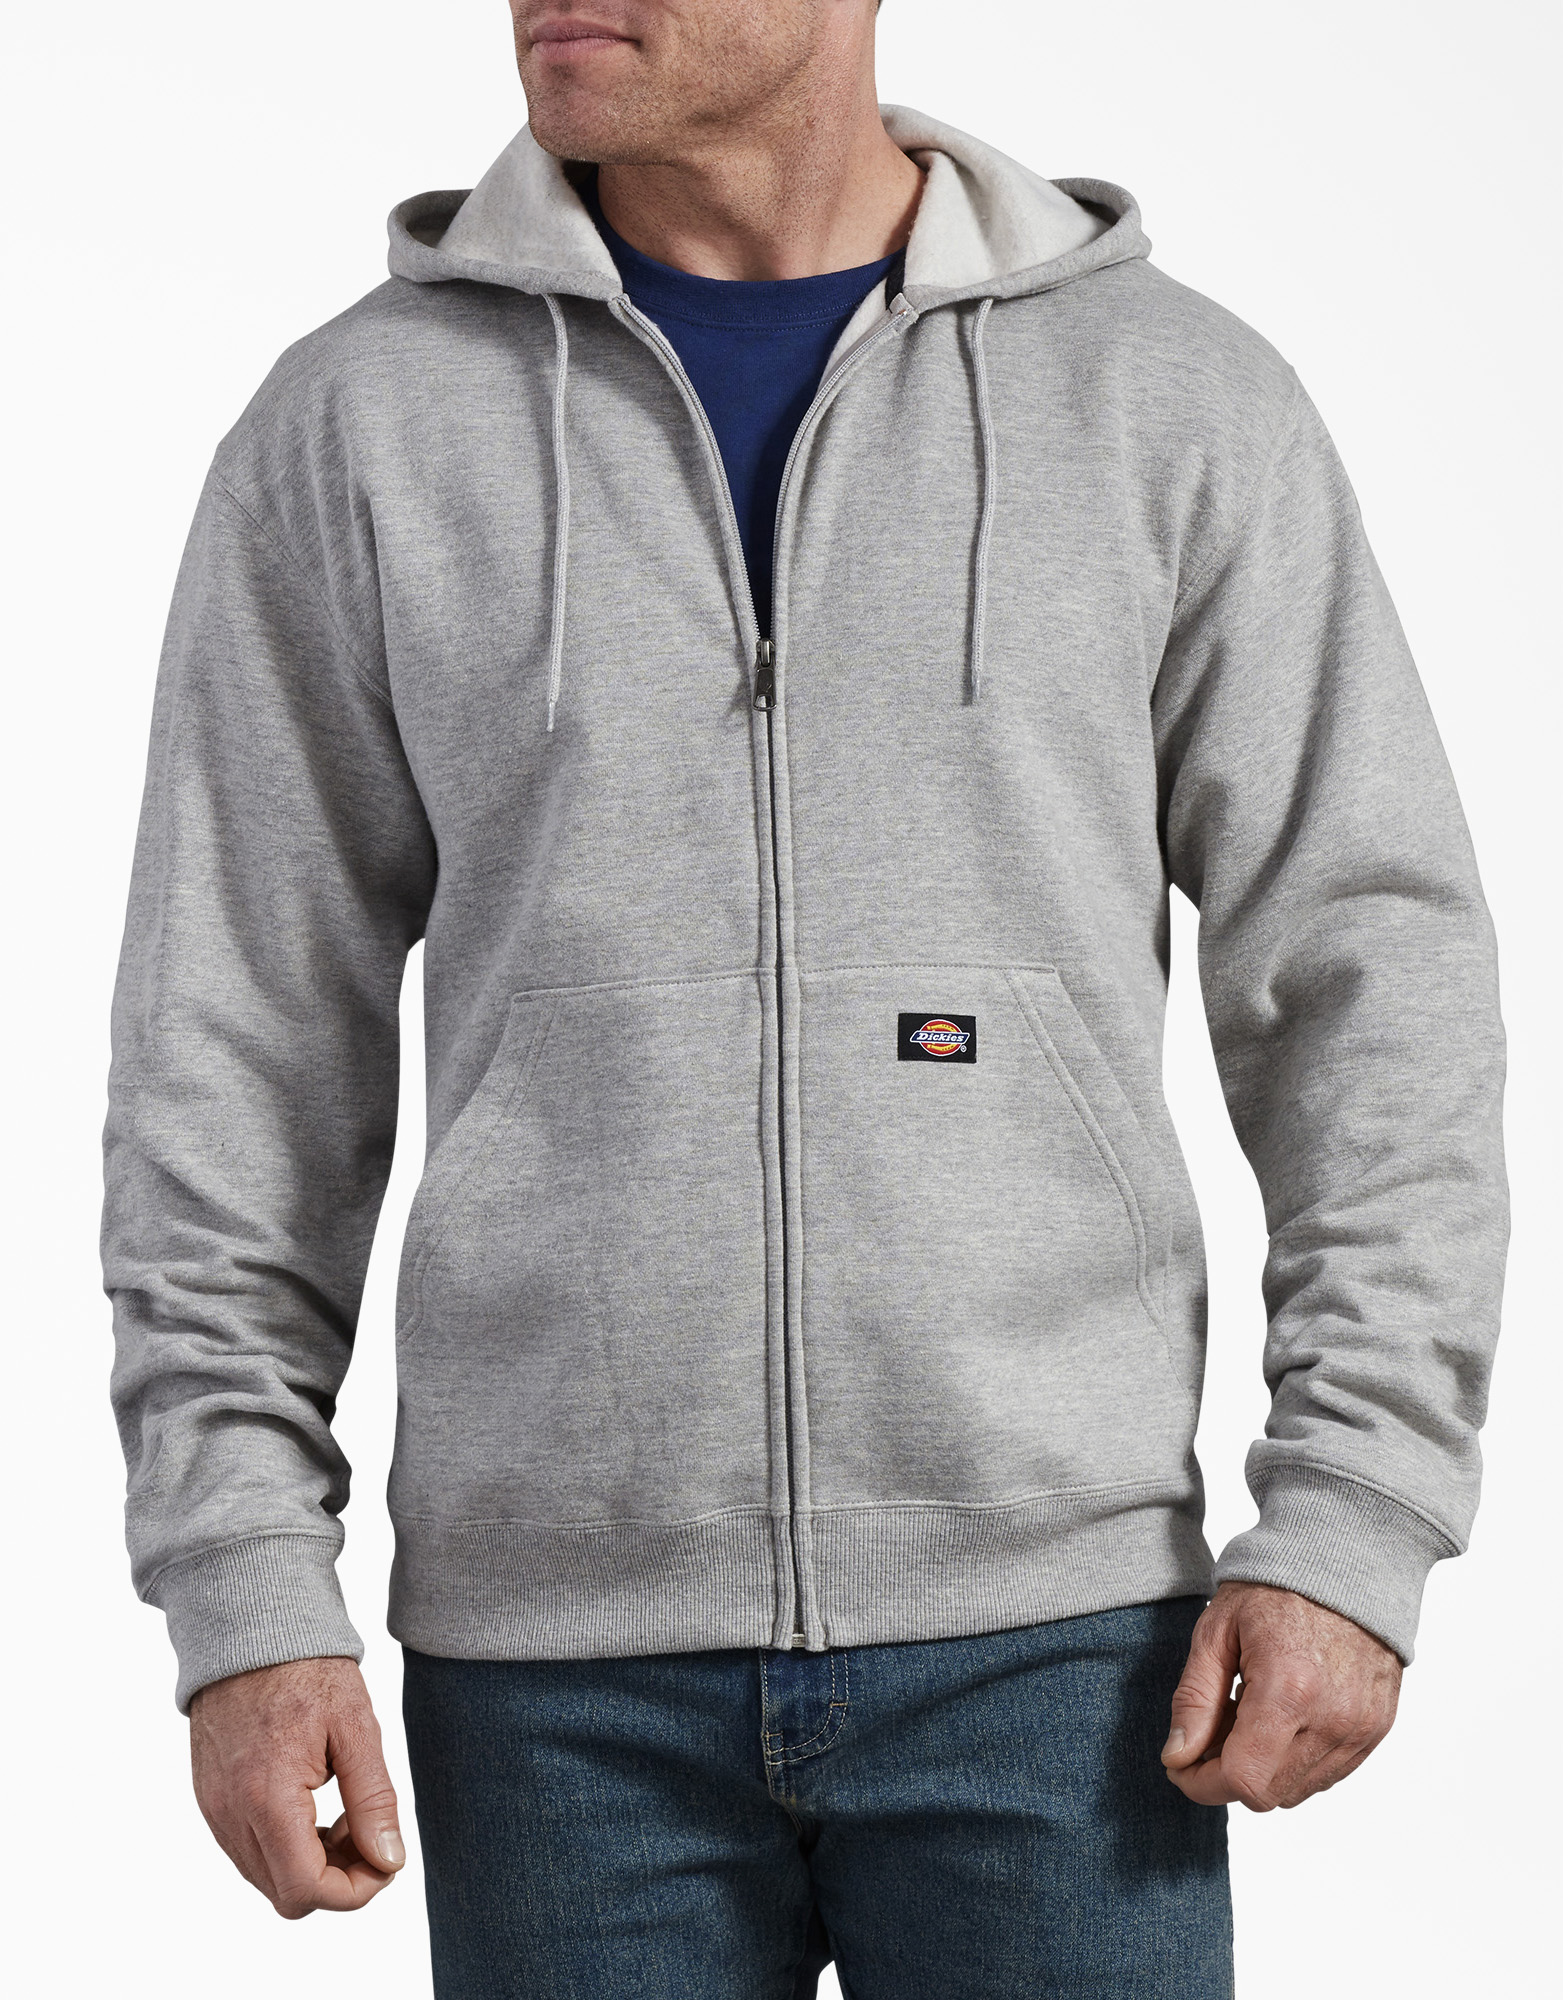 Fleece Full Zip Hoodie - Heather Gray (HG)